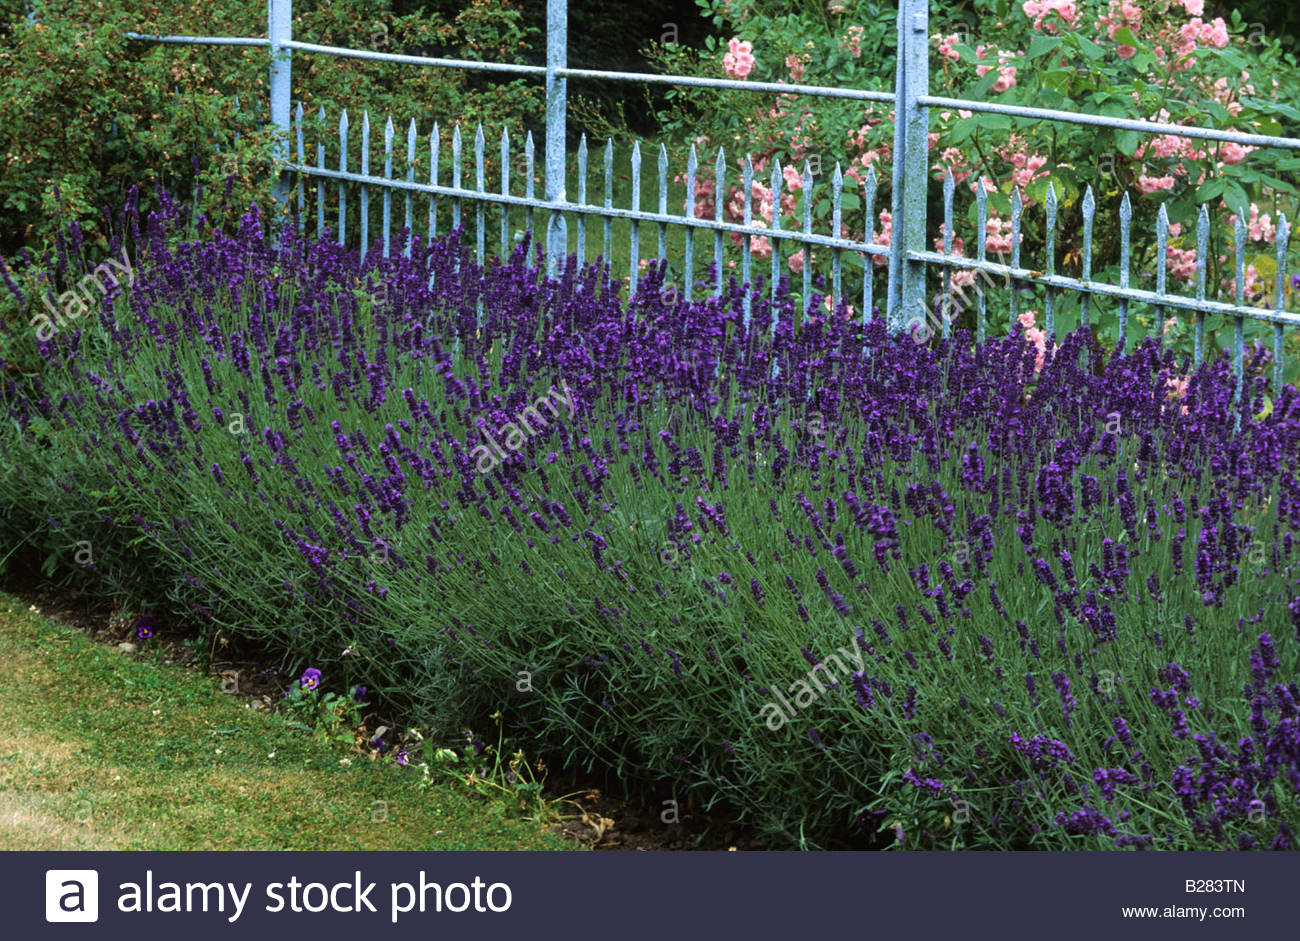 fence hedge lavender stock photos fence hedge lavender stock